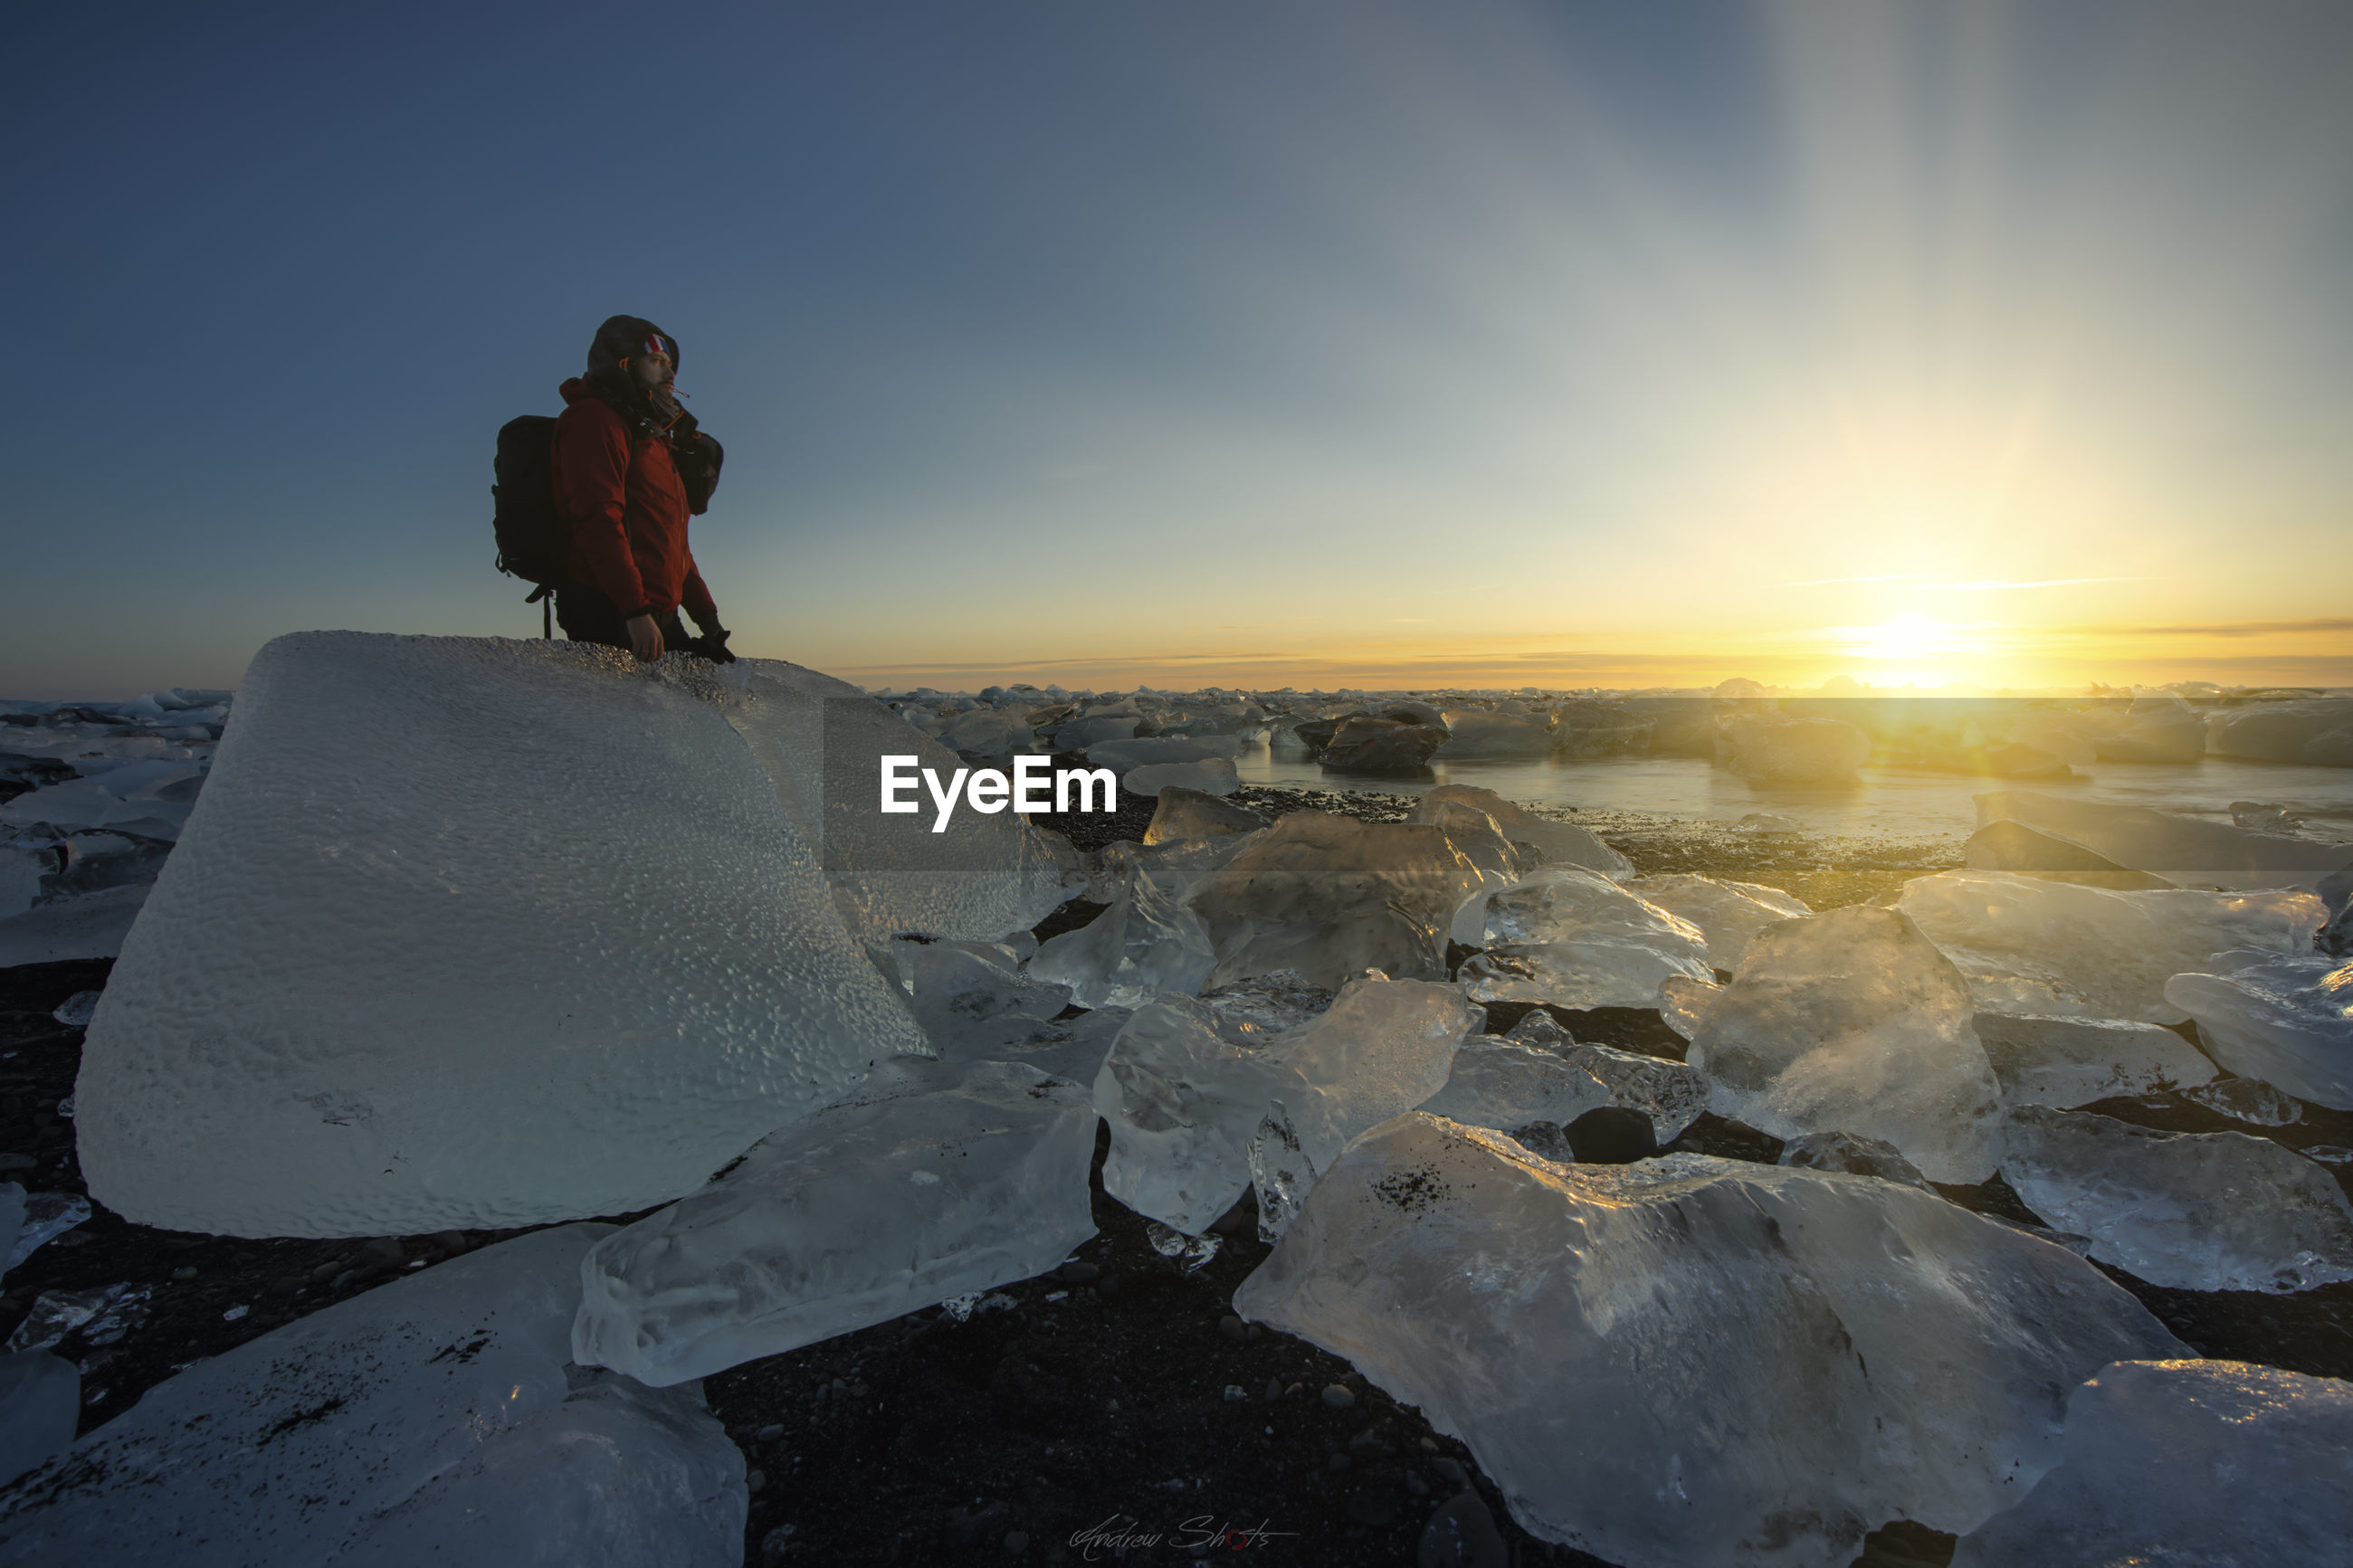 Man standing over ice by frozen lake against sky during sunset